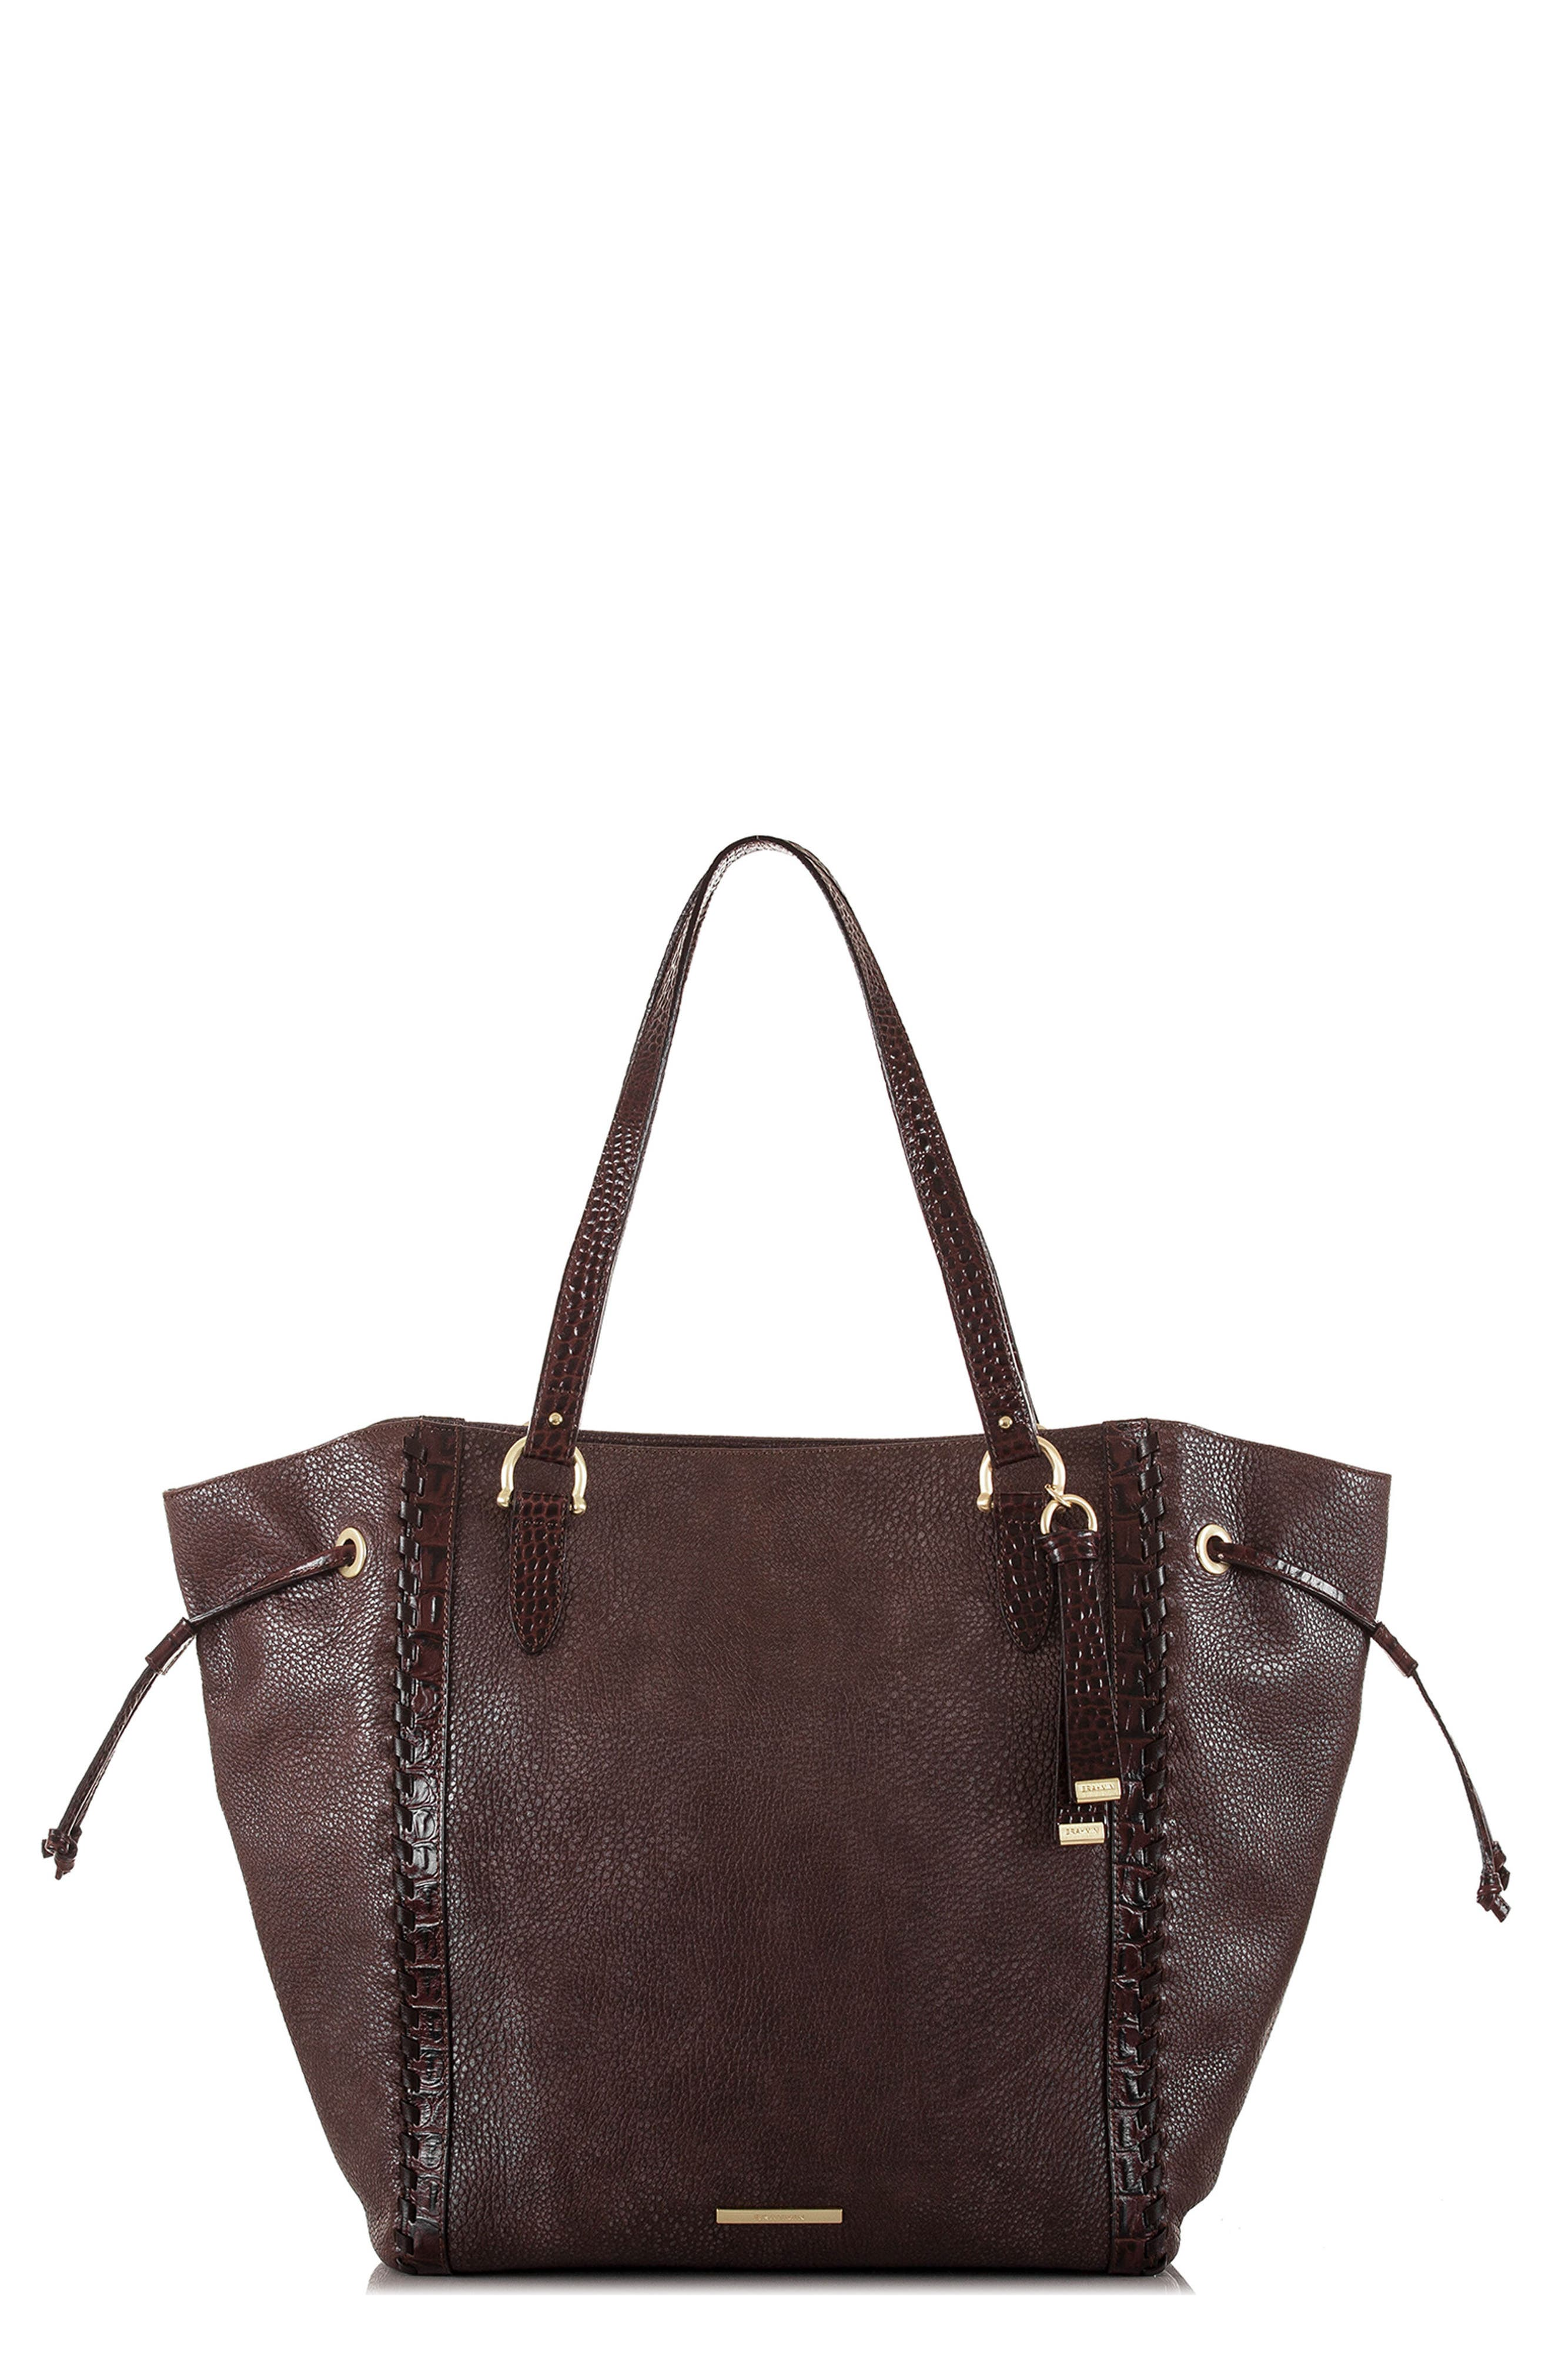 Alternate Image 1 Selected - Brahmin Southcoast Cheyenne Leather Tote